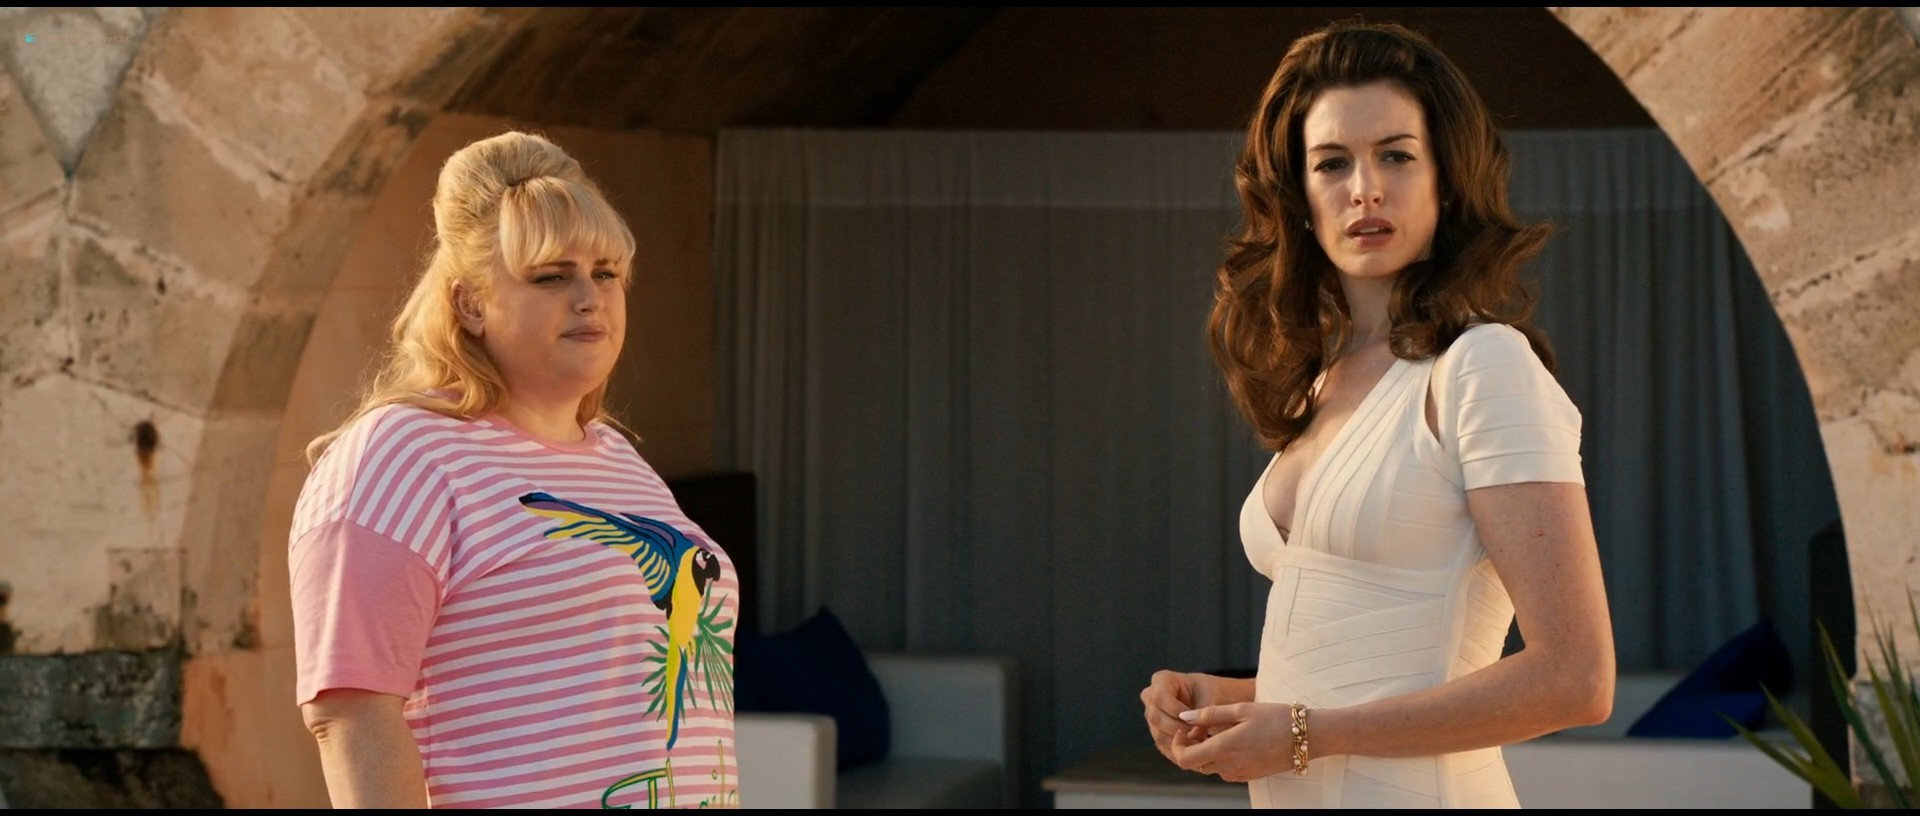 Anne Hathaway hot and sexy - The Hustle (2019) HD 1080p Web (6)